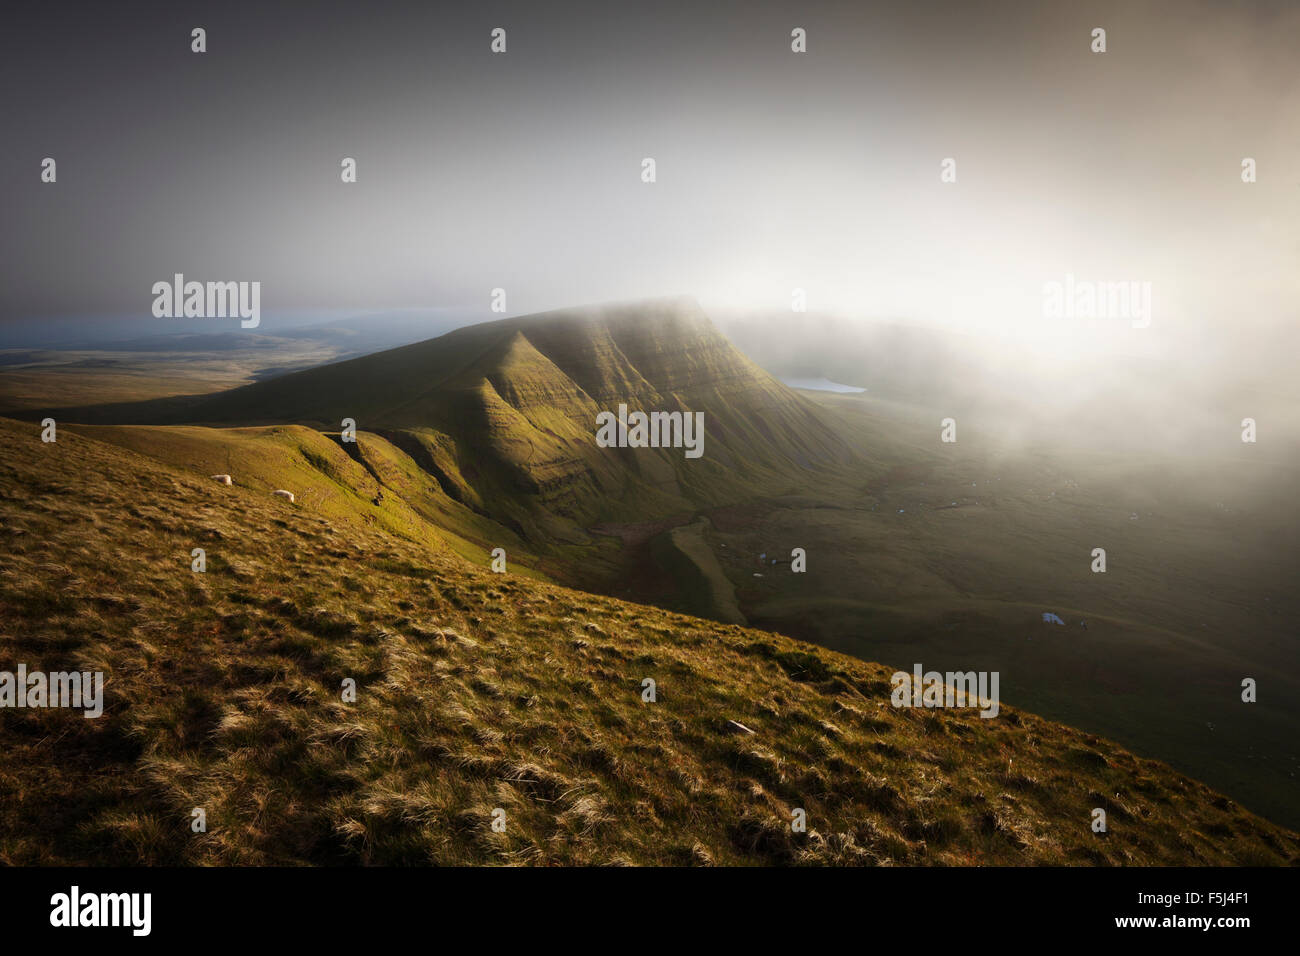 Nebel Picws Xiaodan The Black Mountain in überrollen. Brecon Beacons National Park. Carmarthenshire. Wales. Stockbild